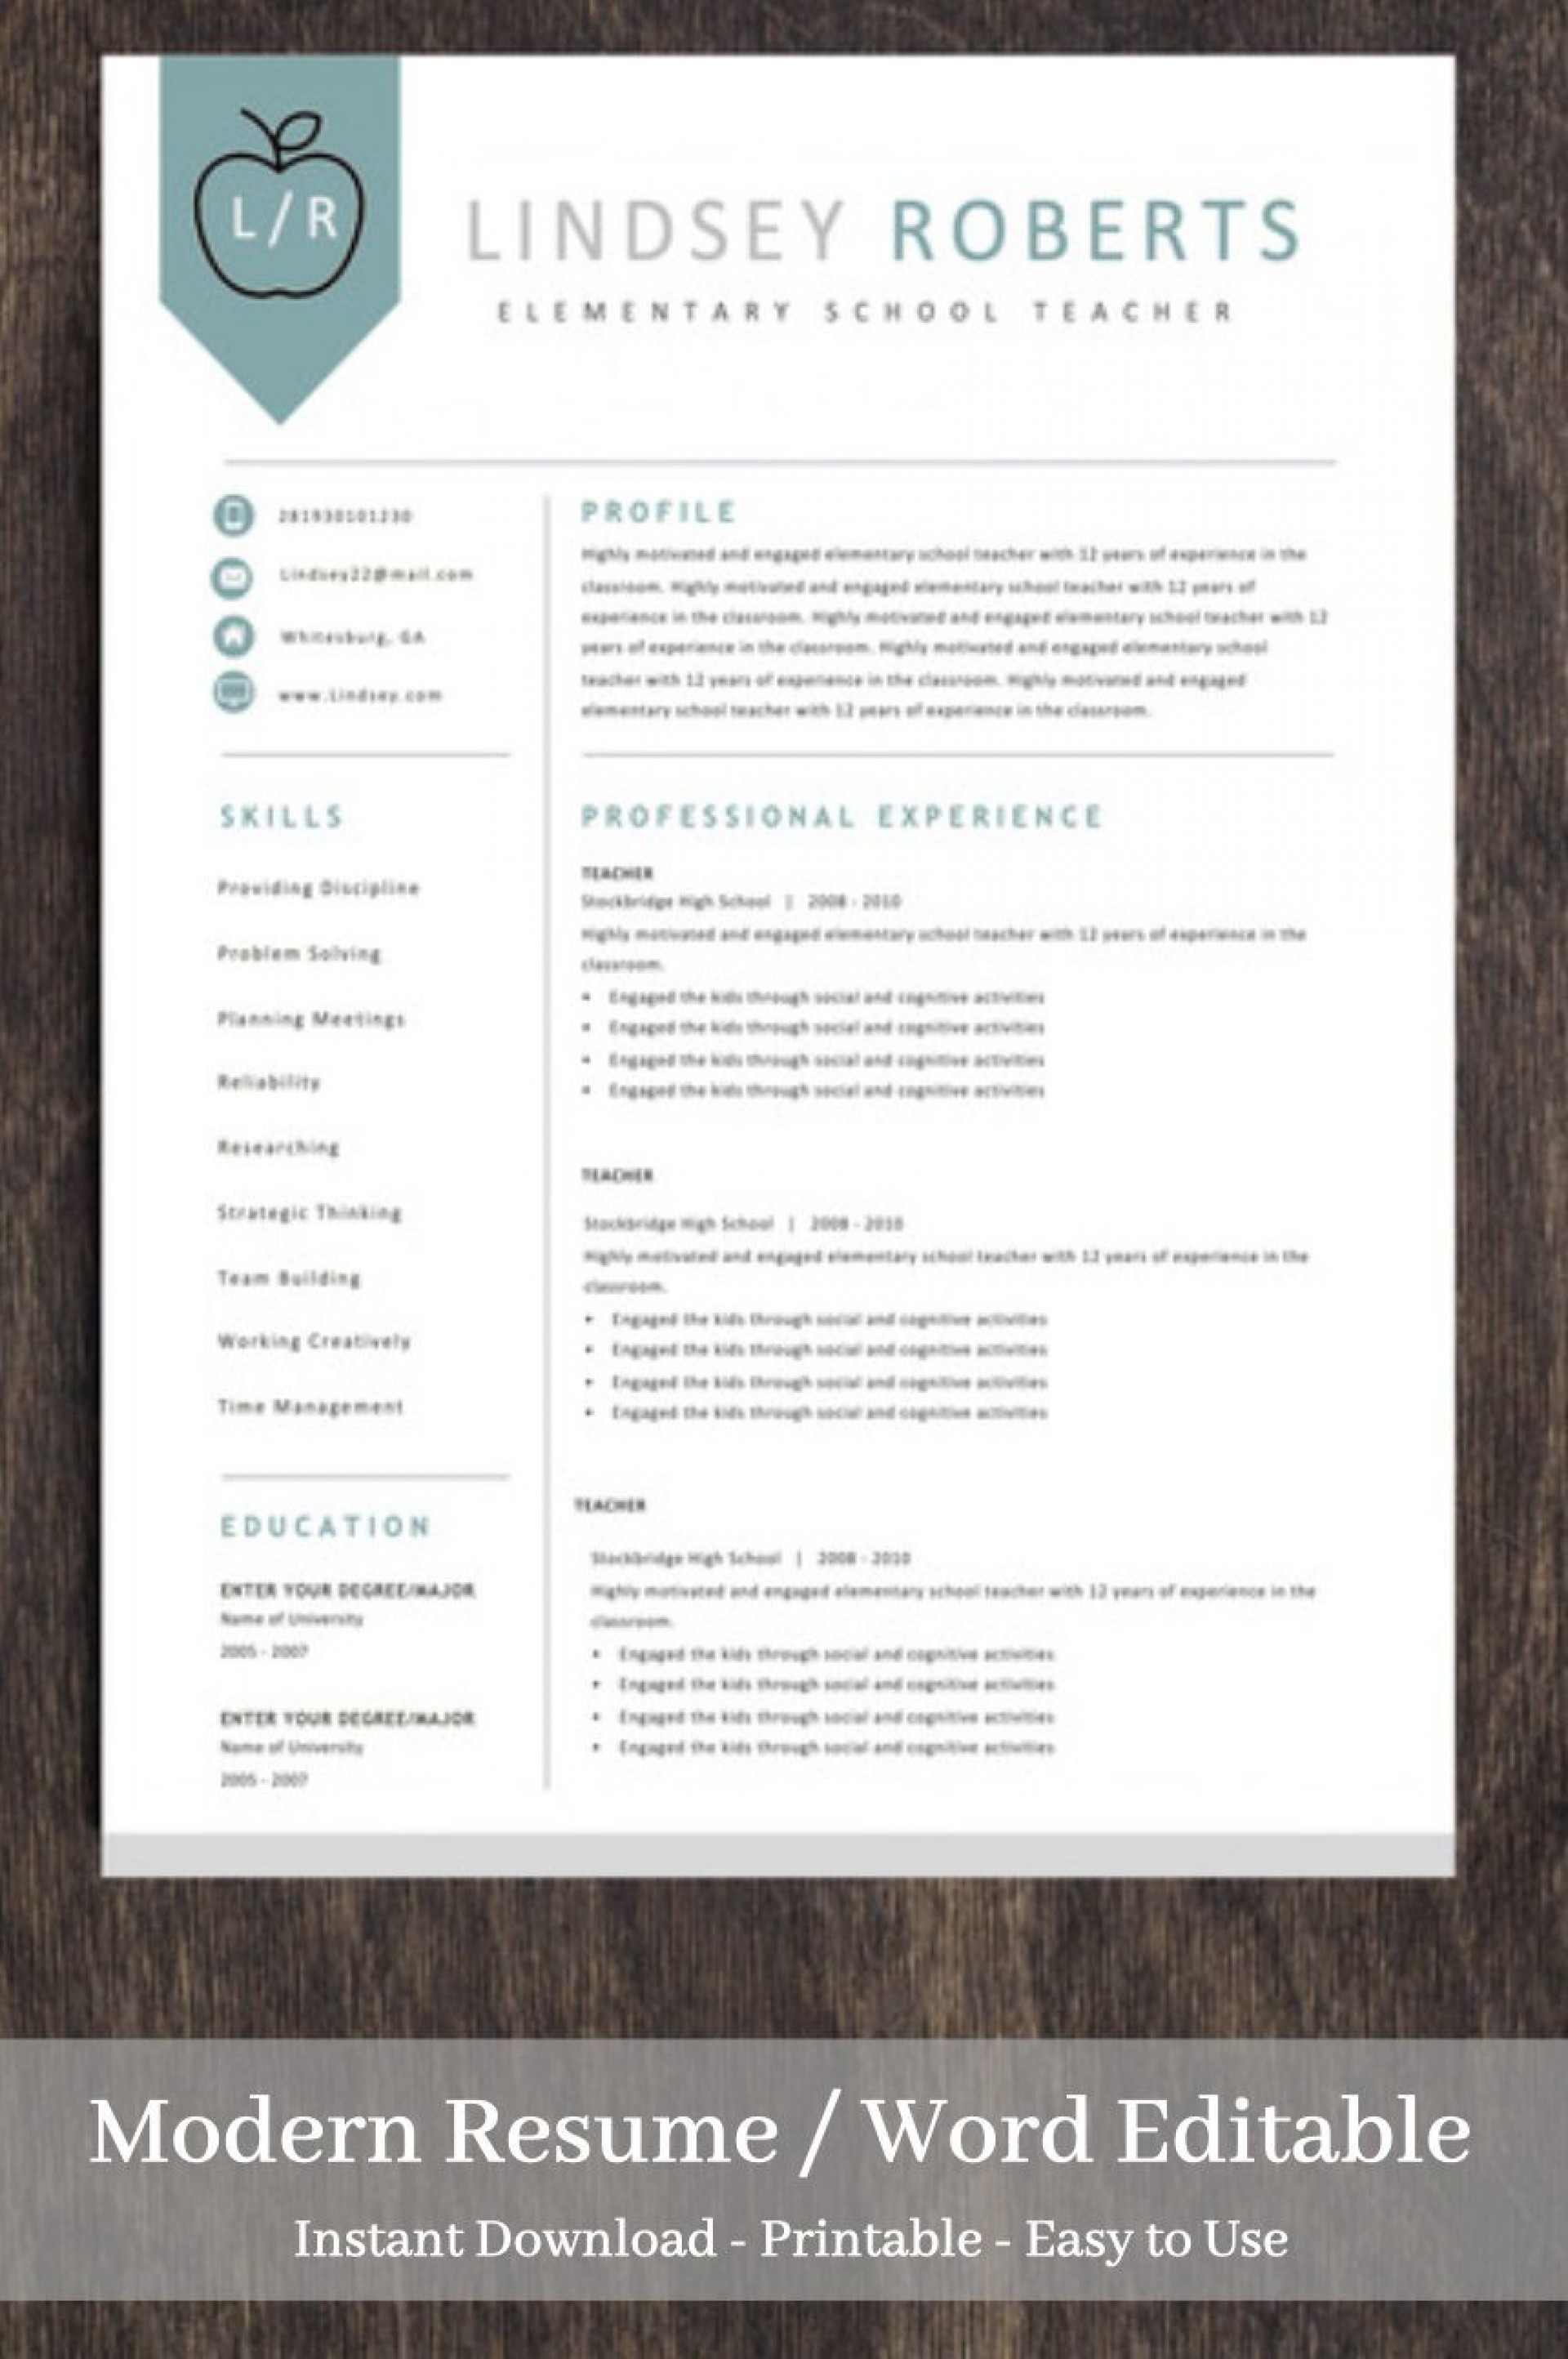 003 Incredible Teacher Resume Template Free Picture  Cv Word Download Editable Format Doc1920